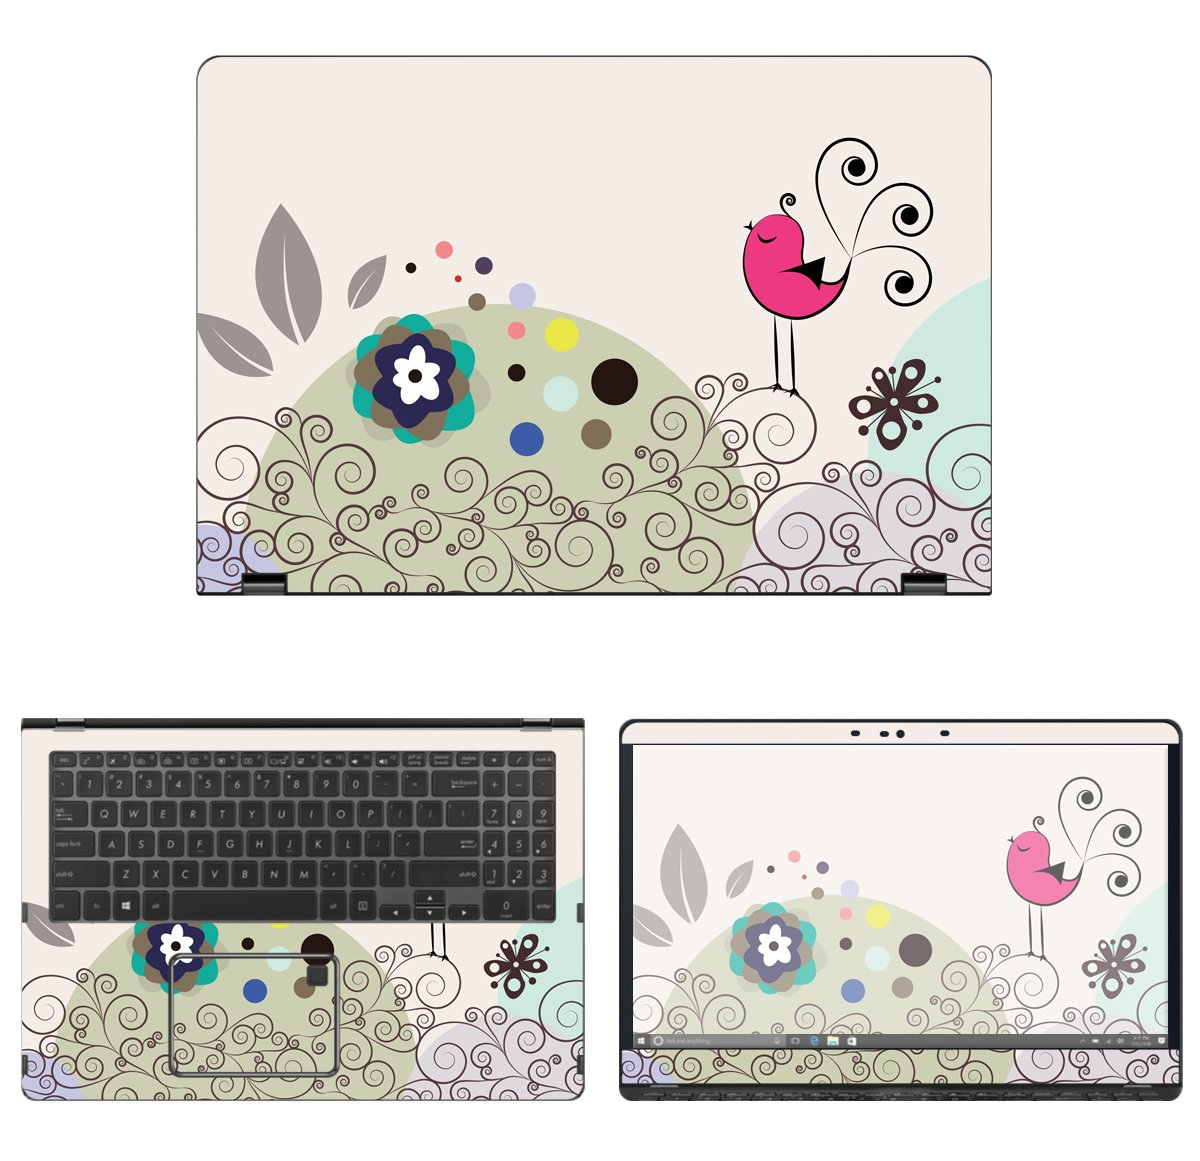 decalrus - Protective Decal Skin Sticker for Asus Q525UA 2-in-1 (15.6'' Screen) case Cover wrap ASq525UA_15-27 by decalrus (Image #1)